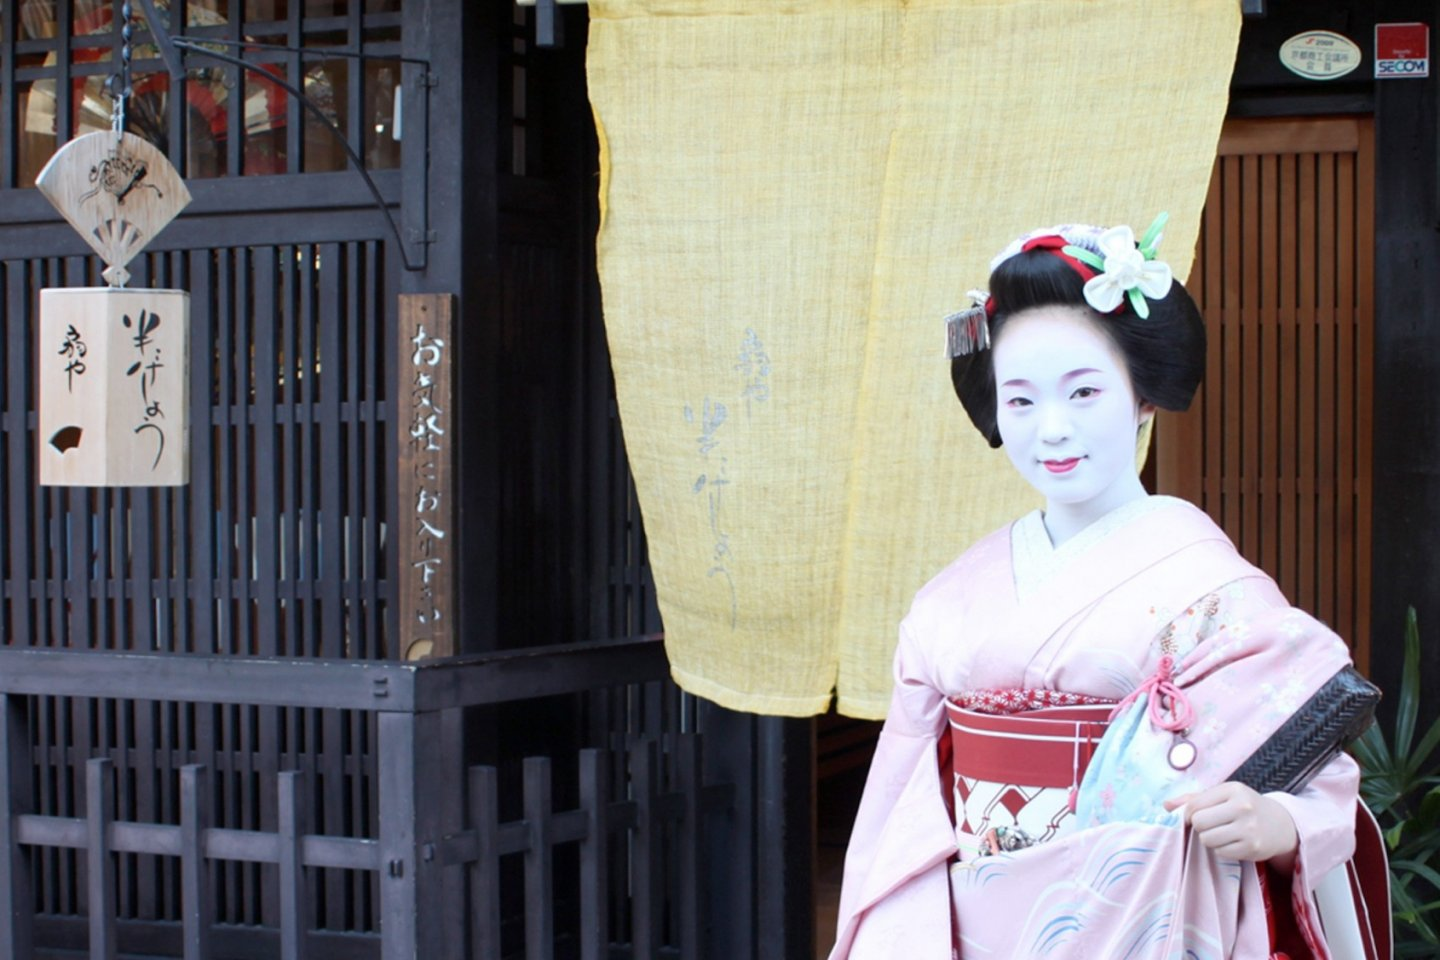 Be entranced by ancient traditions and beauty in this historic kyoto townhouse